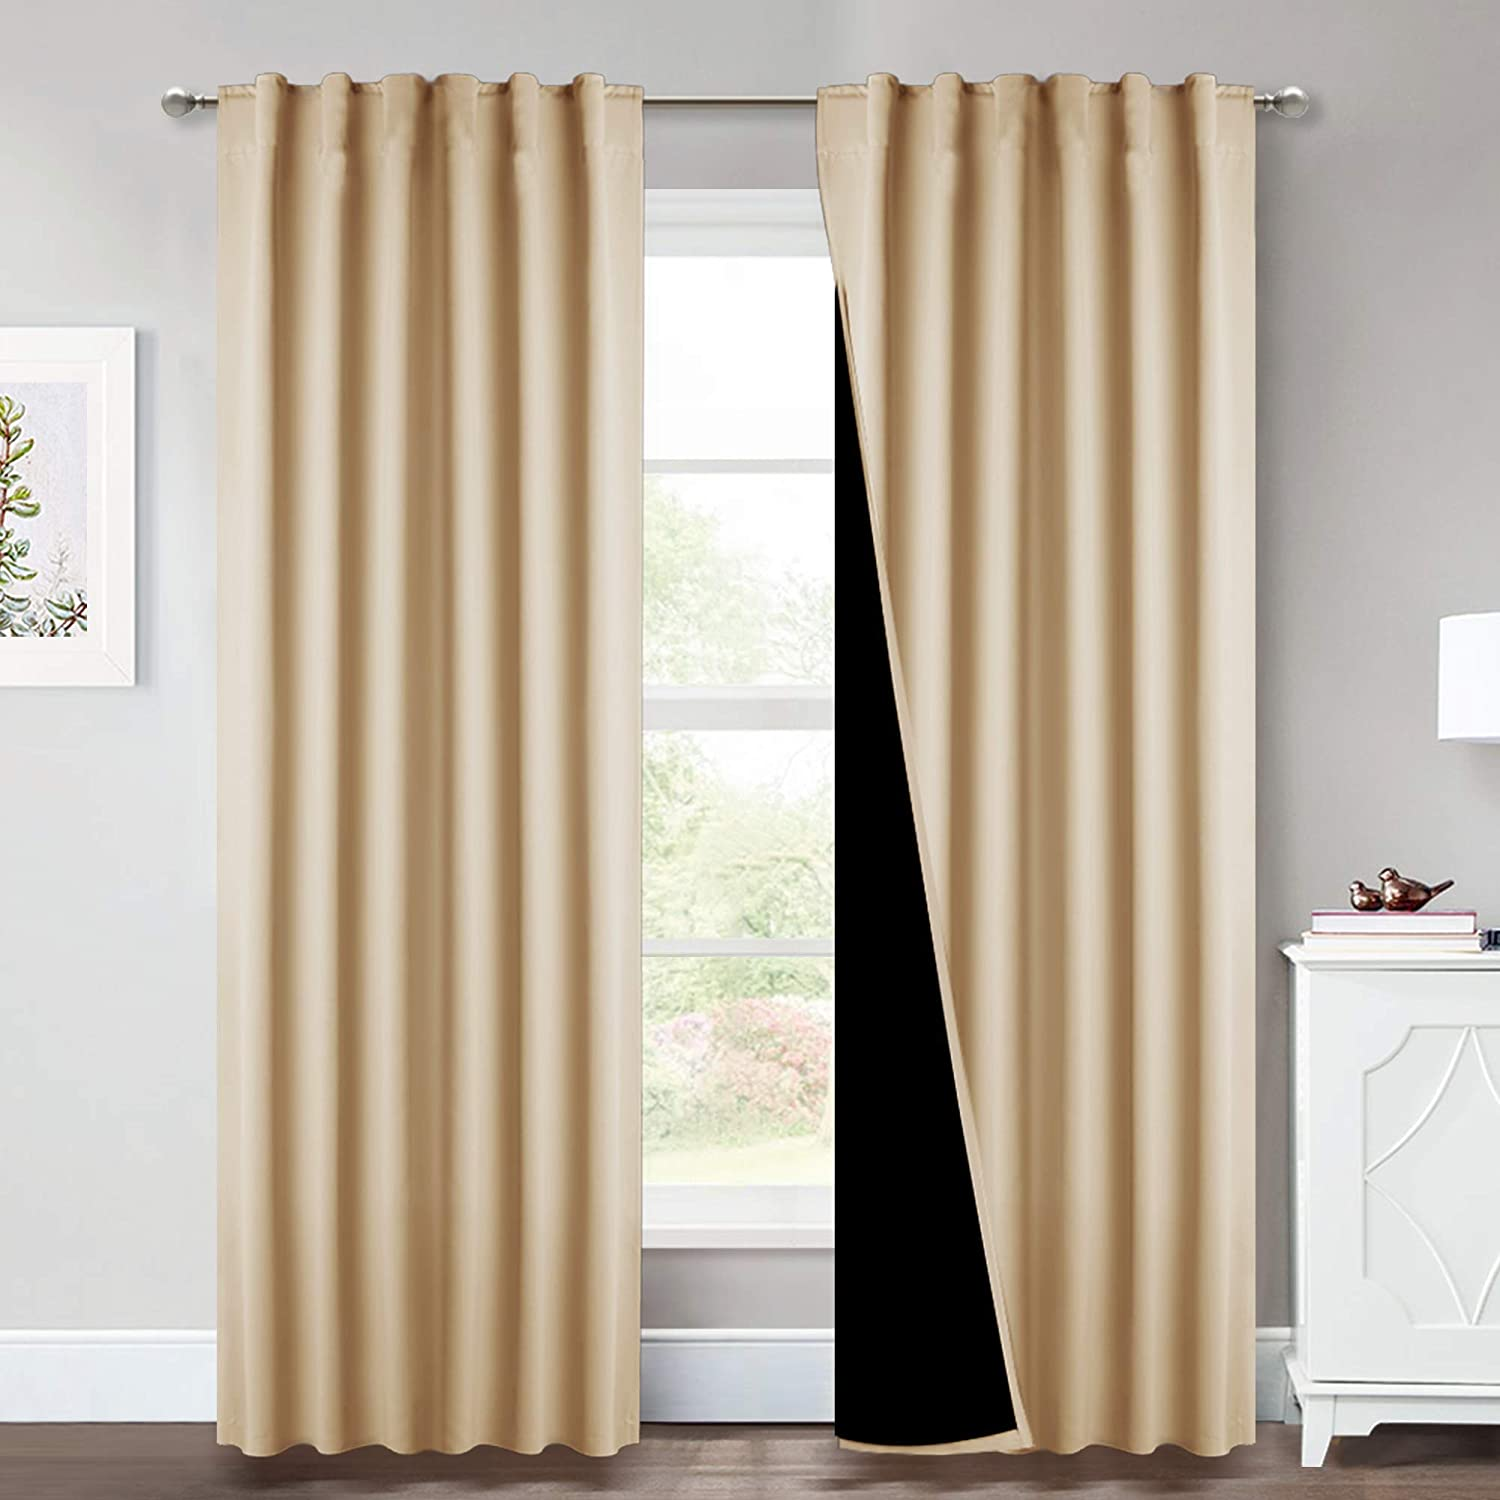 NICETOWN Thermal Insulated 100% Blackout Curtains, Multi-Function Noise Reducing Drapes with Black Lining, Full Light Blocking Drapery Panels for Patio (Biscotti Beige, 2 PCs, 52 inches x 95 inches)